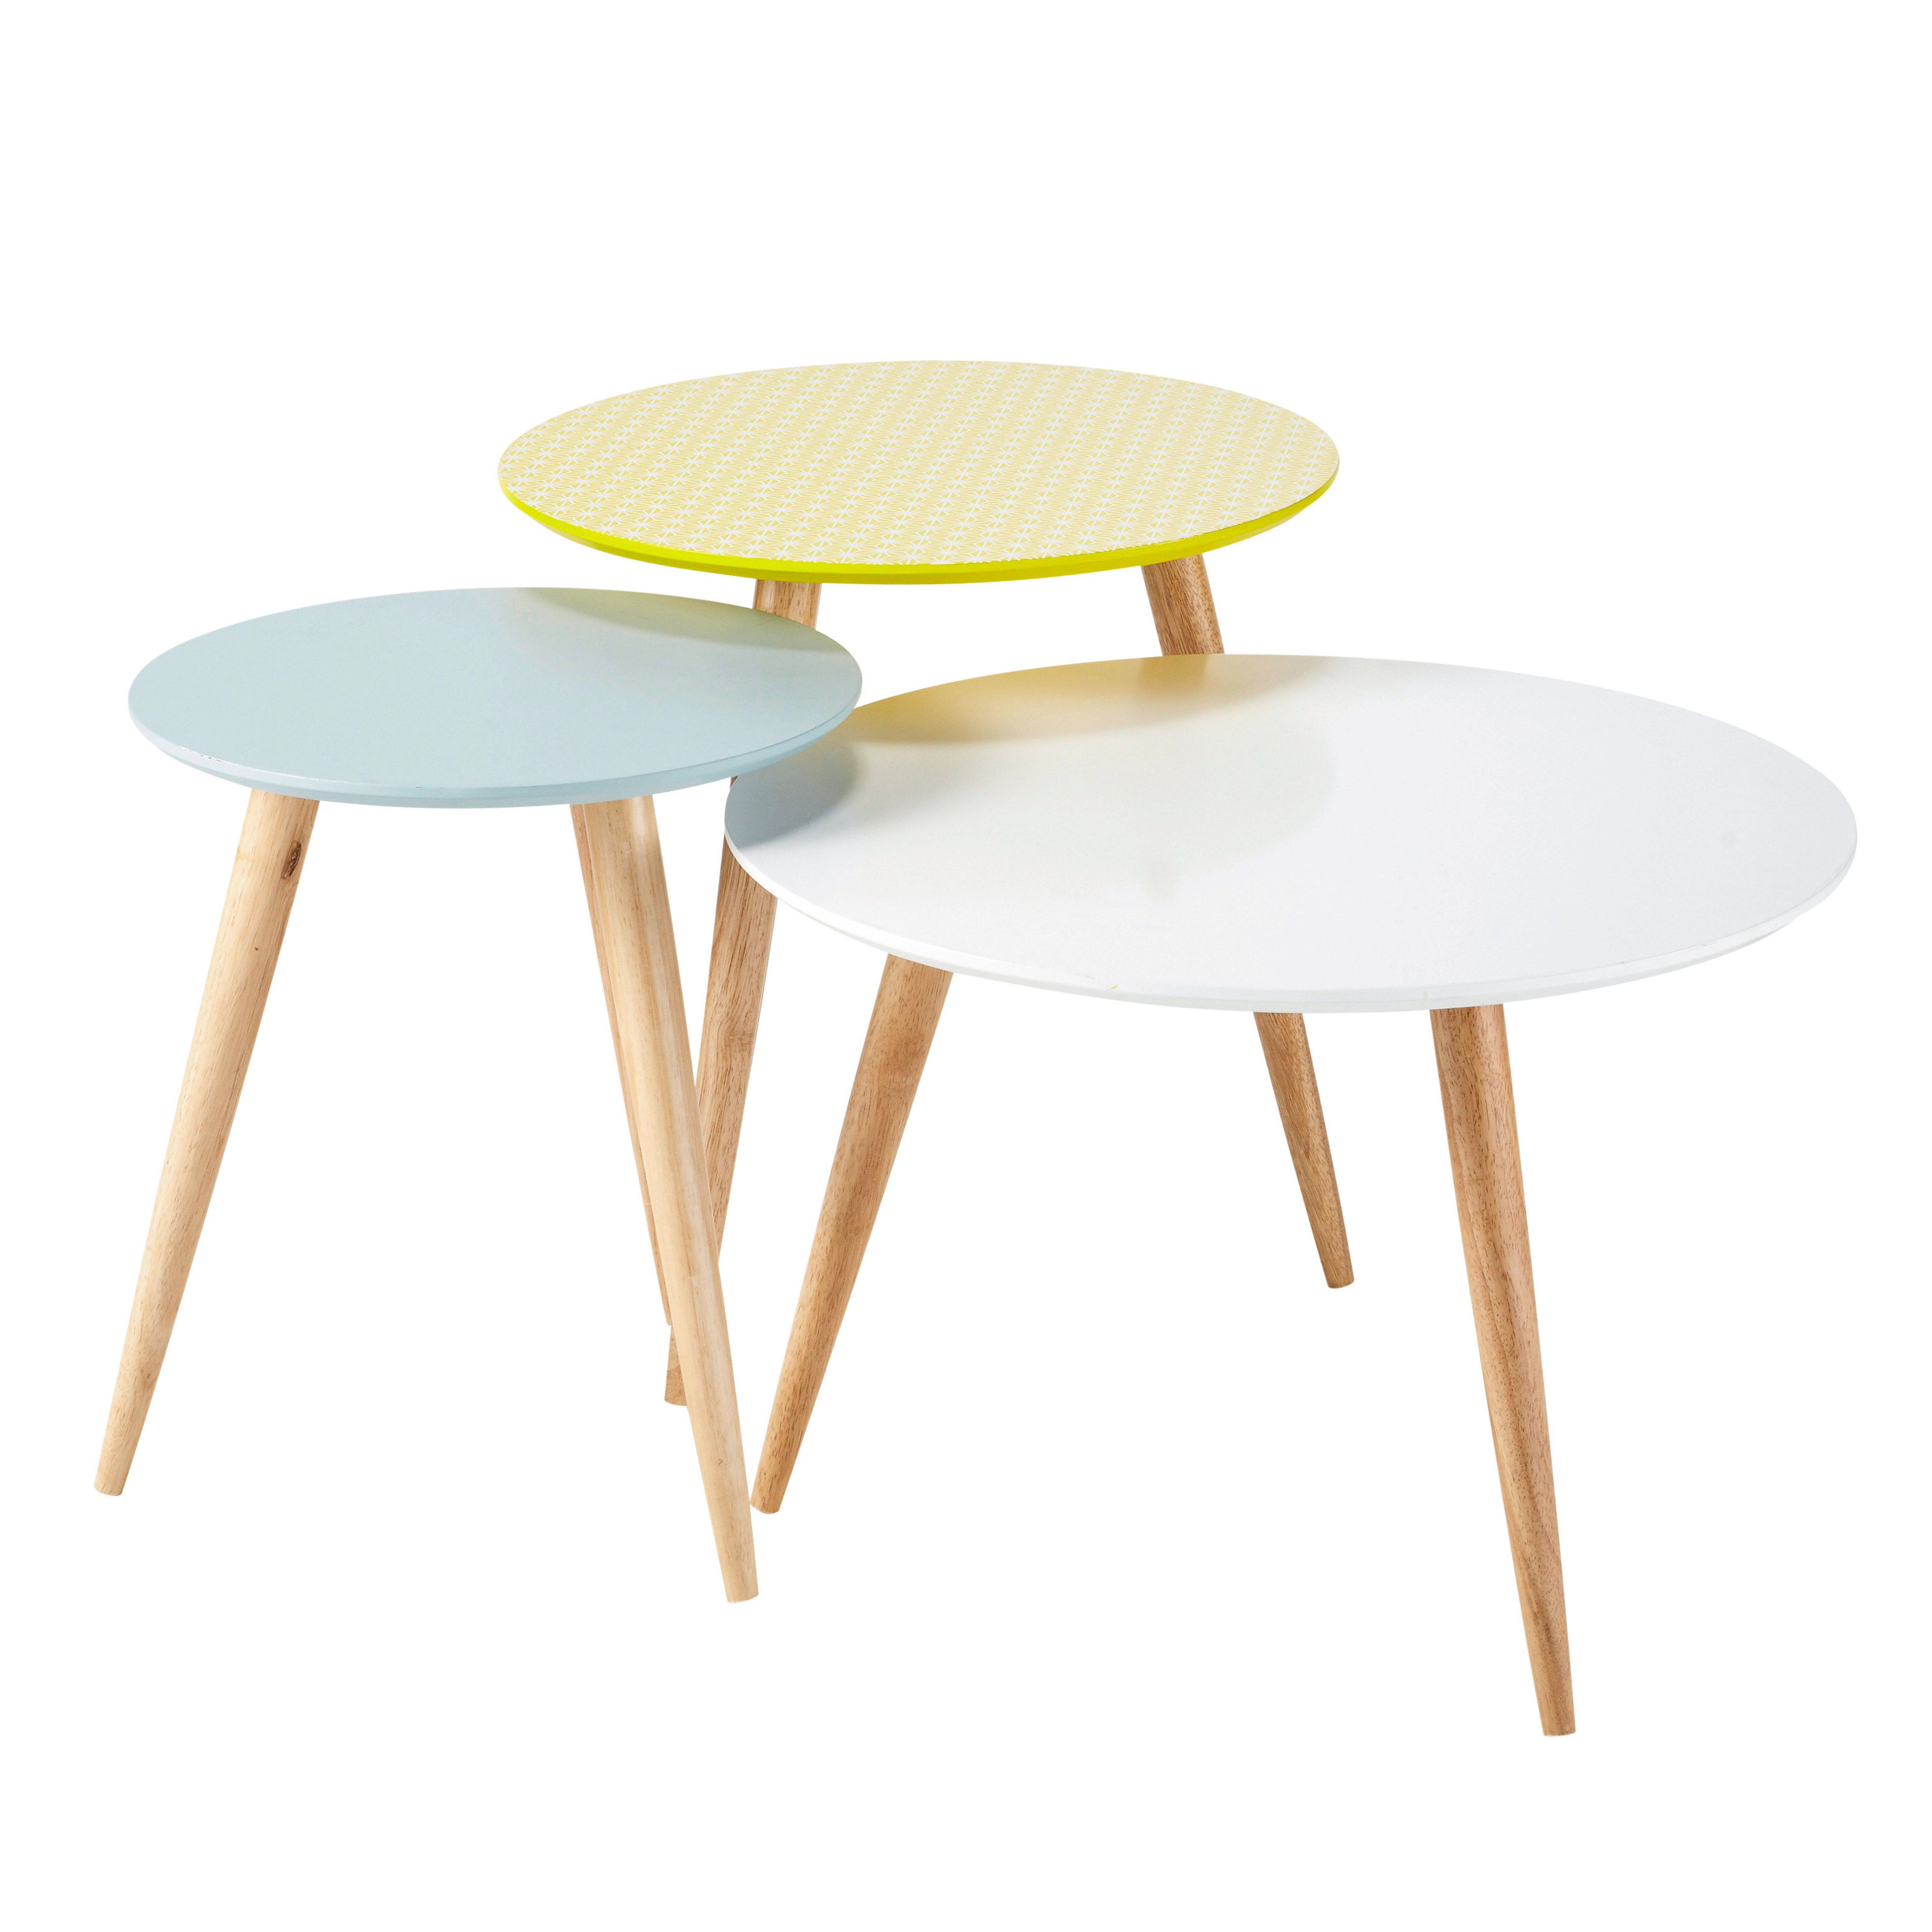 Permalink to Incroyable De Table Basse Pliante Ikea